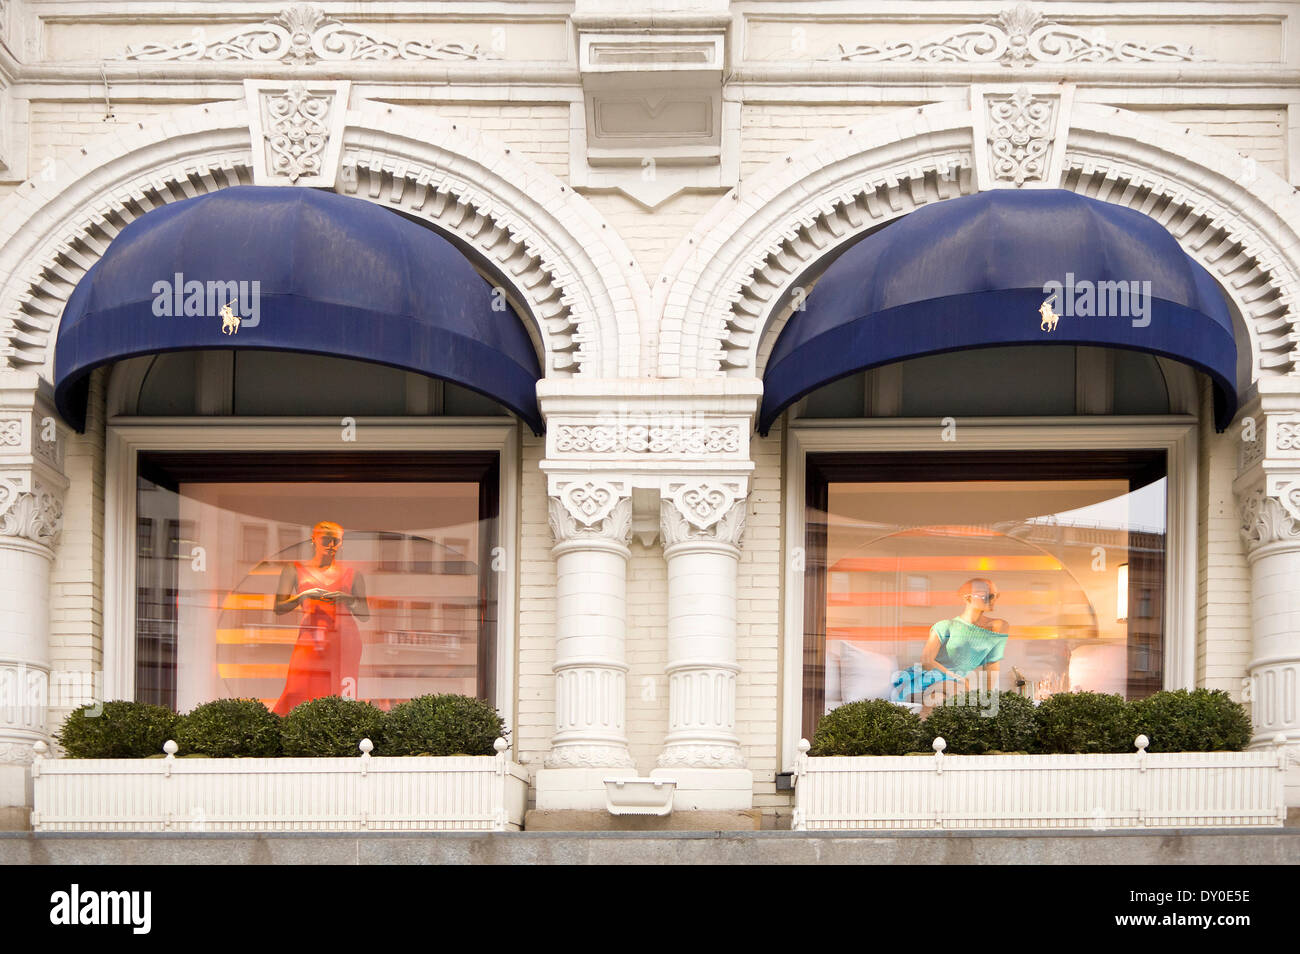 Exterior view of the Ralph Lauren designer shop in Moscow. - Stock Image